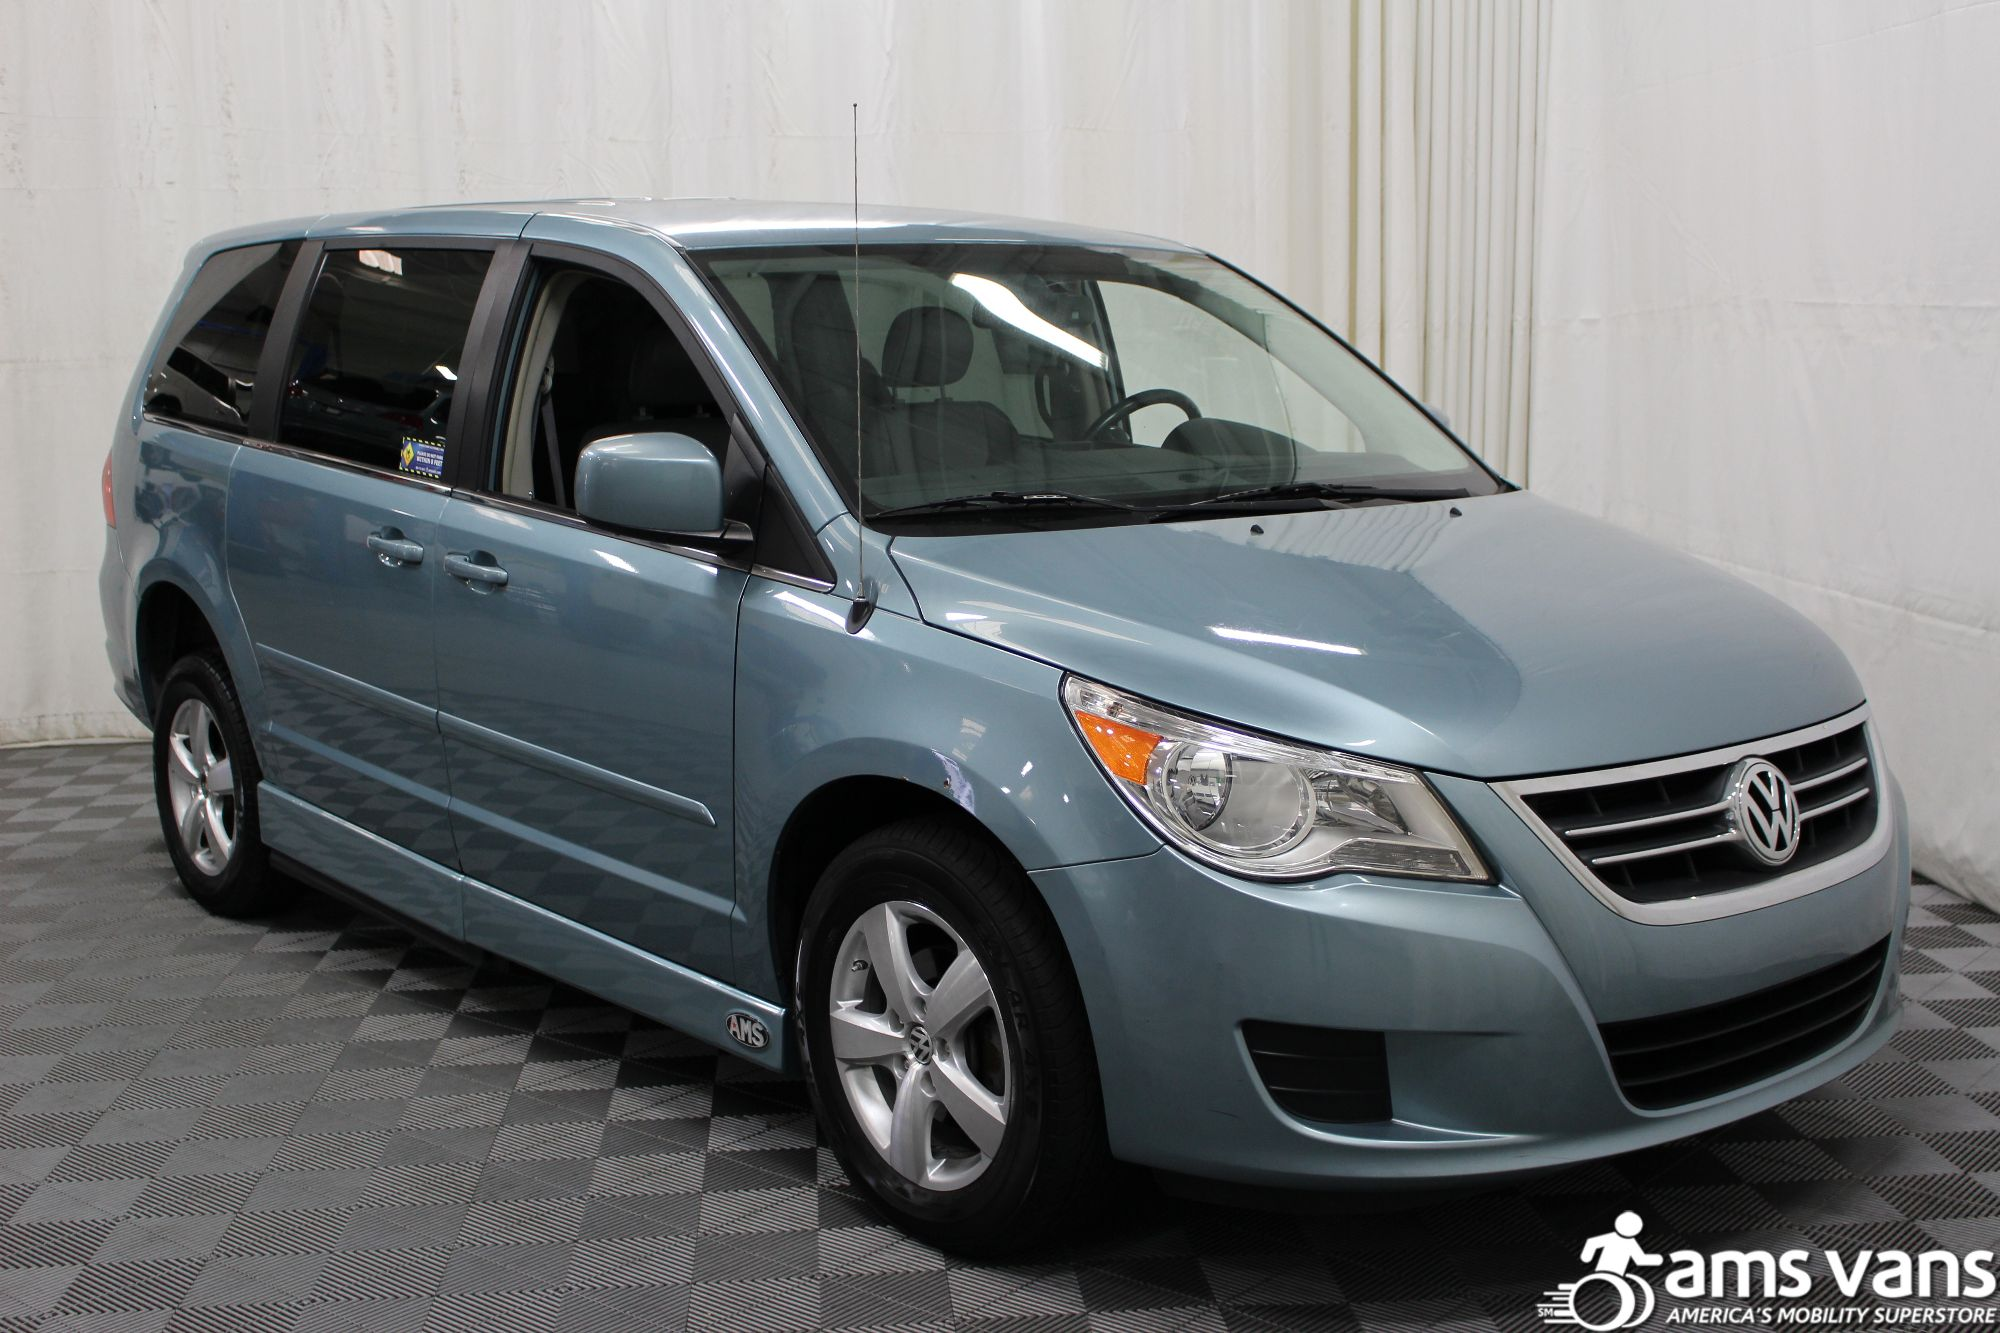 2010 Volkswagen Routan Wheelchair Van For Sale #11